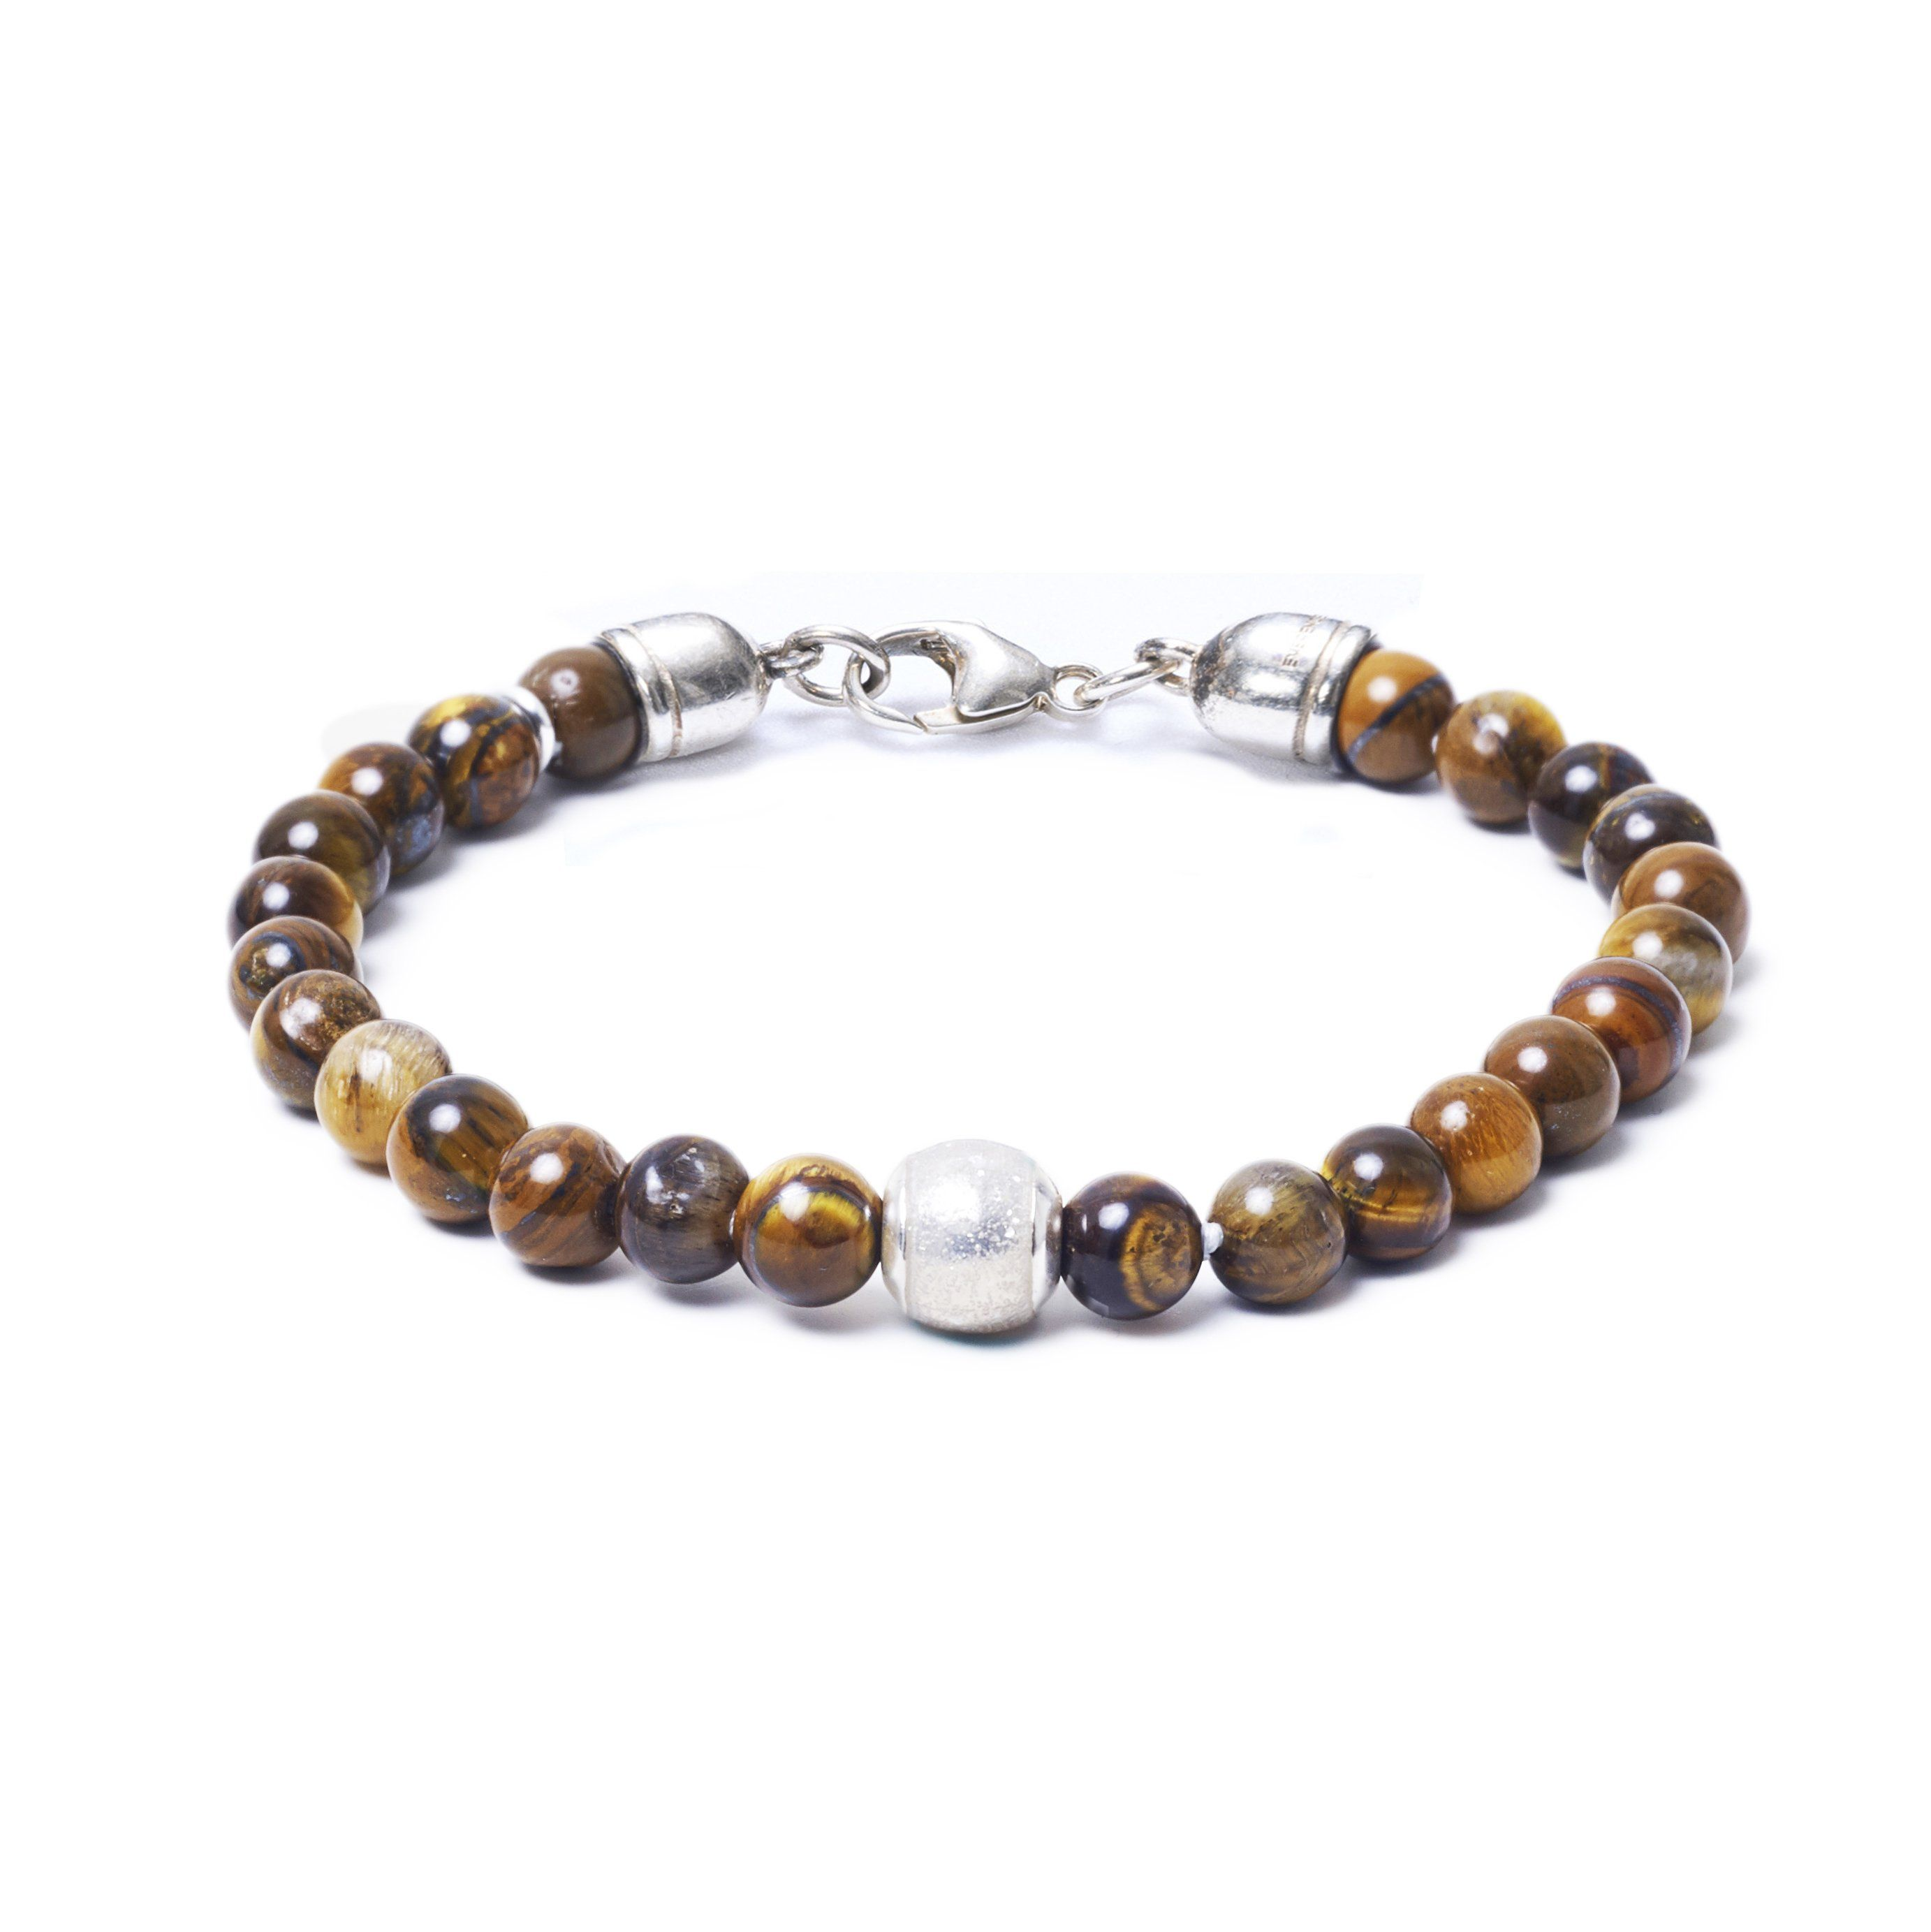 Tiger Eye, One Everence Bead everence.life Clear Lobster Claw 7